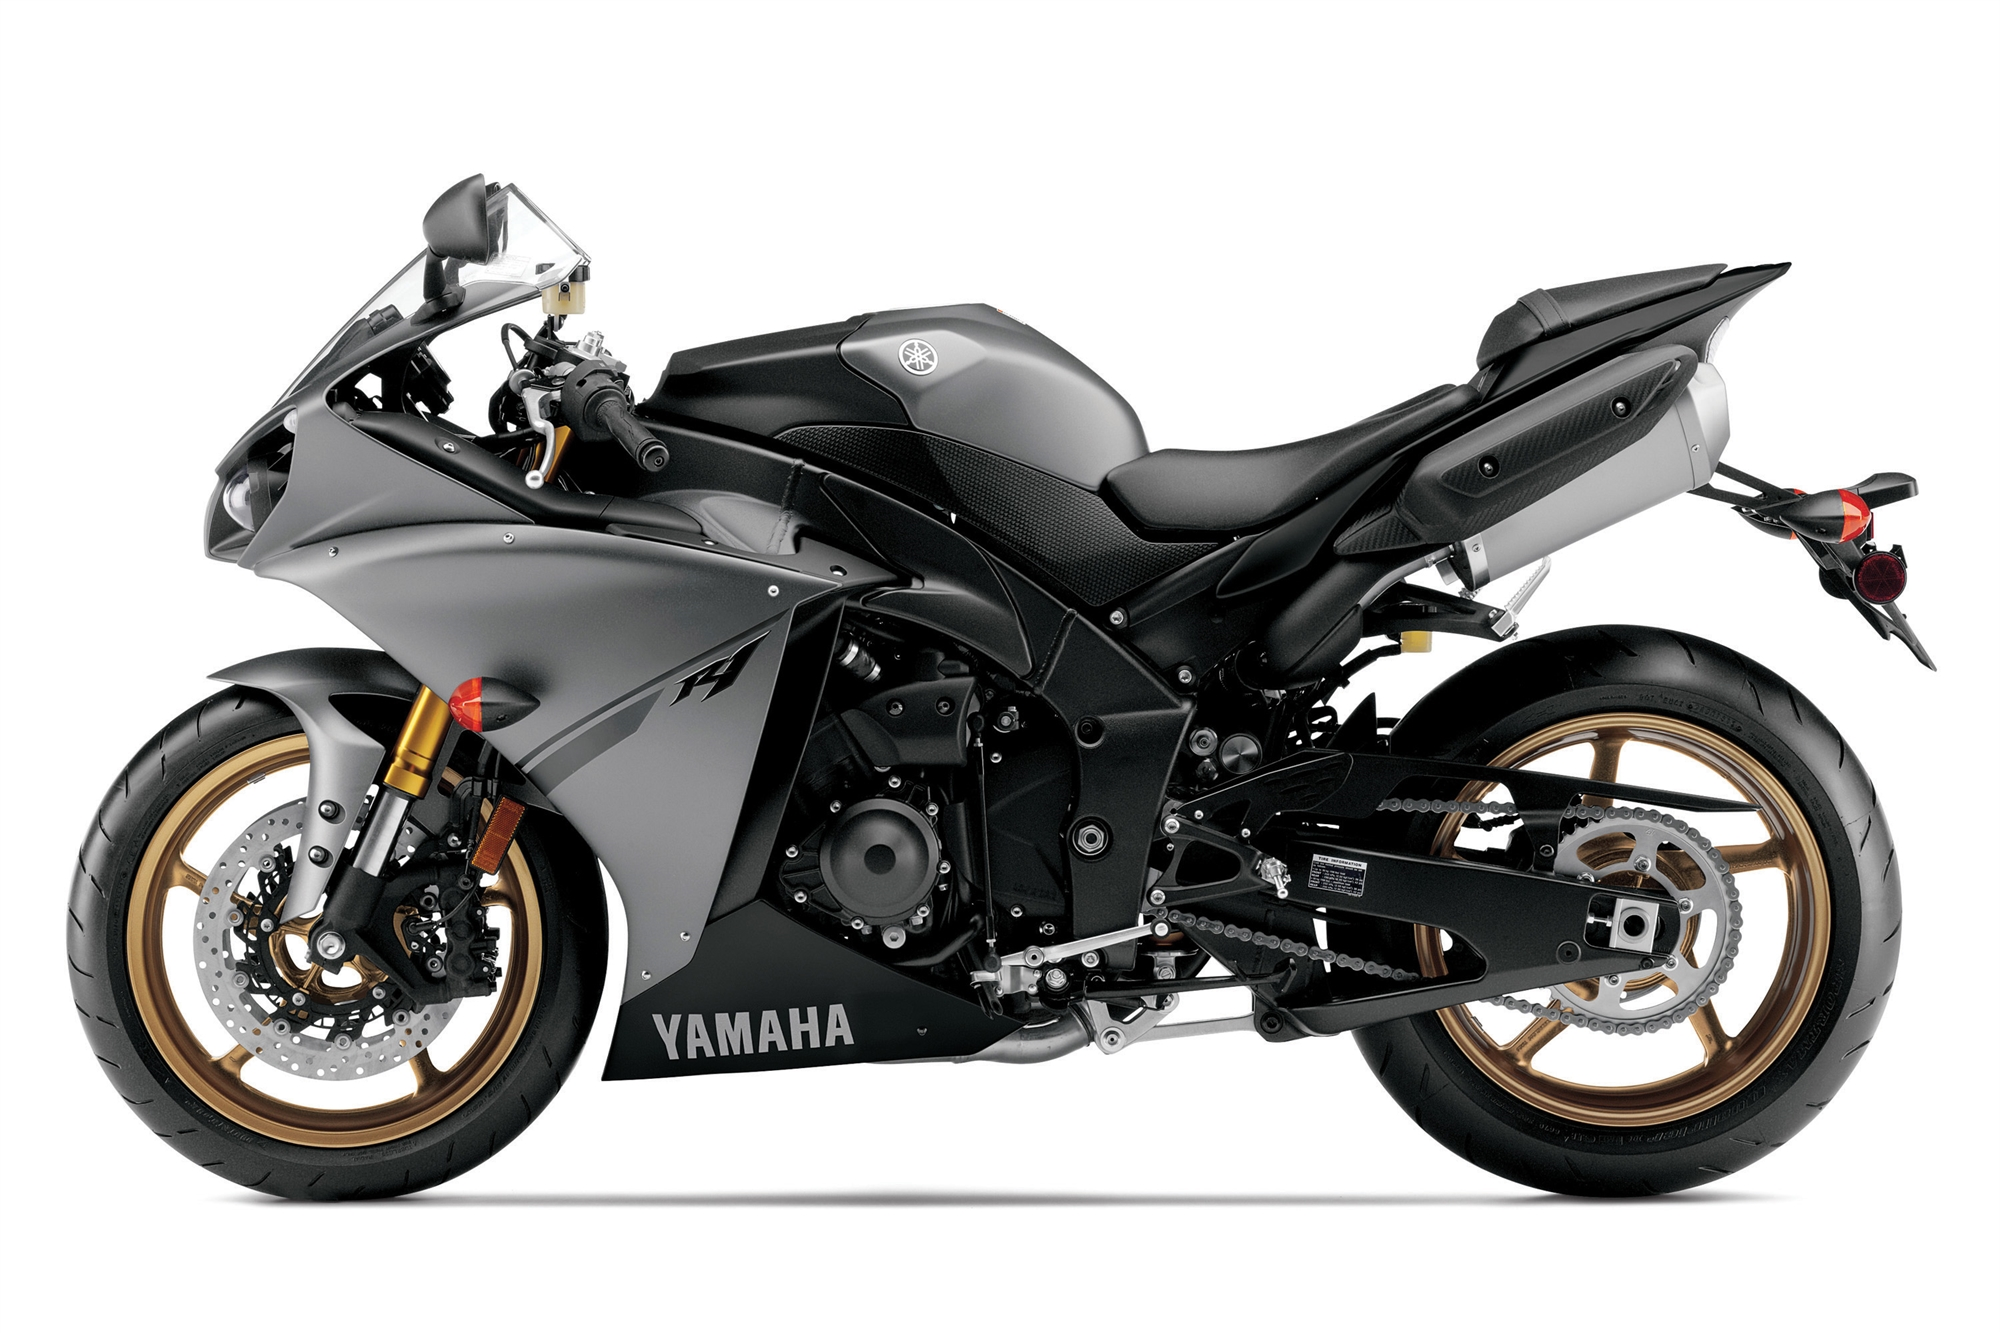 2008 r1 wiring diagram explained wiring diagrams yamaha r1 red 2008 wiring  model ge diagram ptac